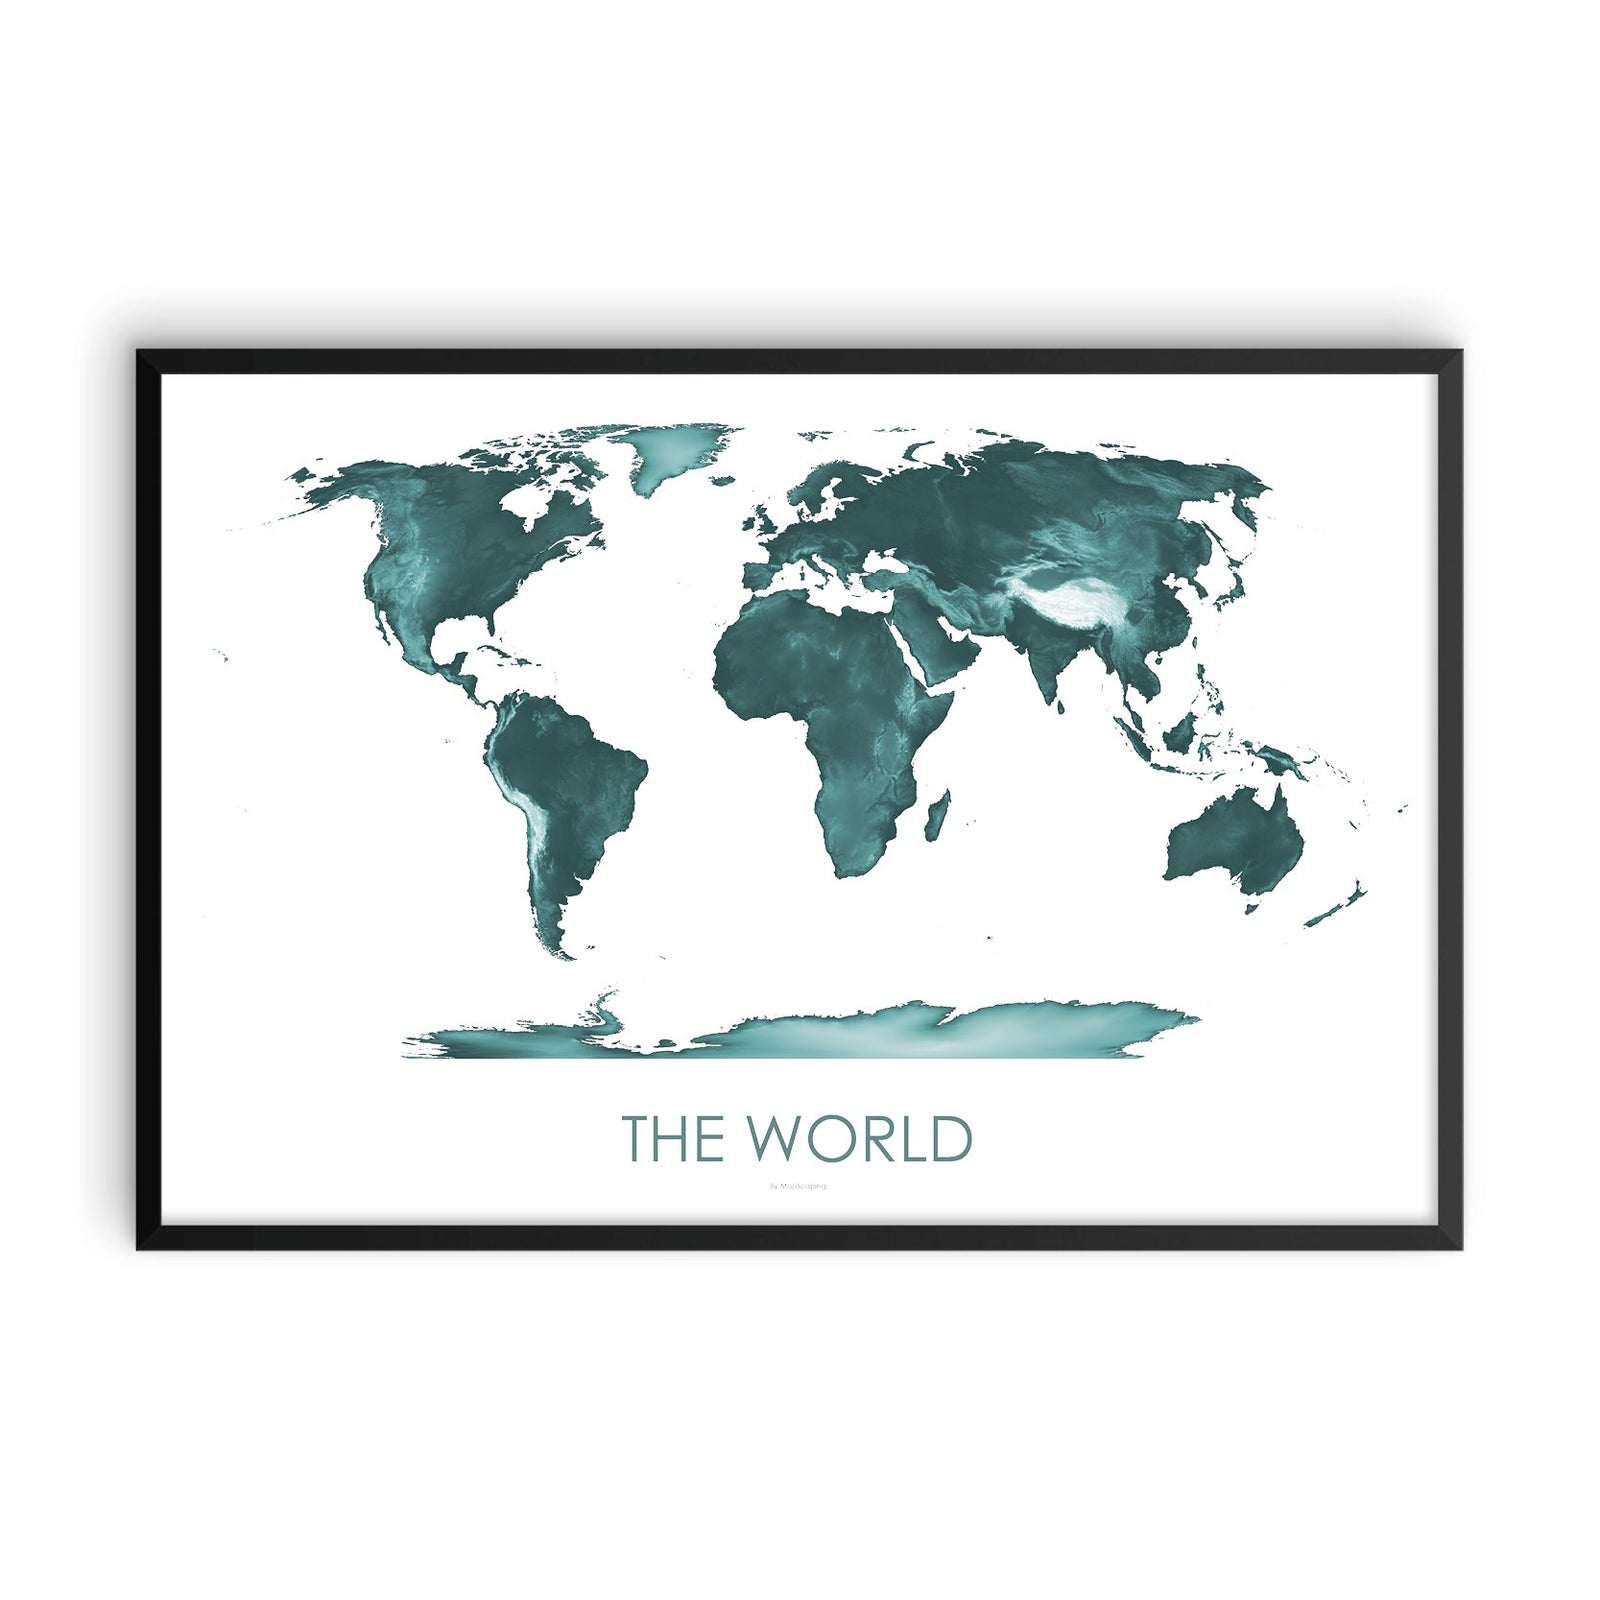 The Picture Of The World Map.Detailed Topographic World Map Phyical World Maps Based On